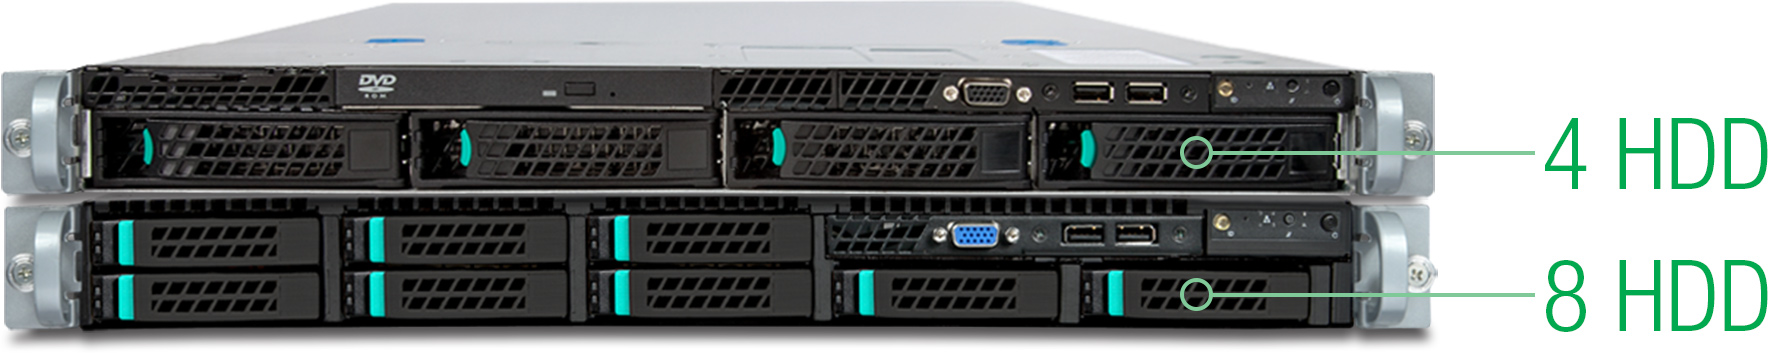 E-1800 R3 – Communications Server